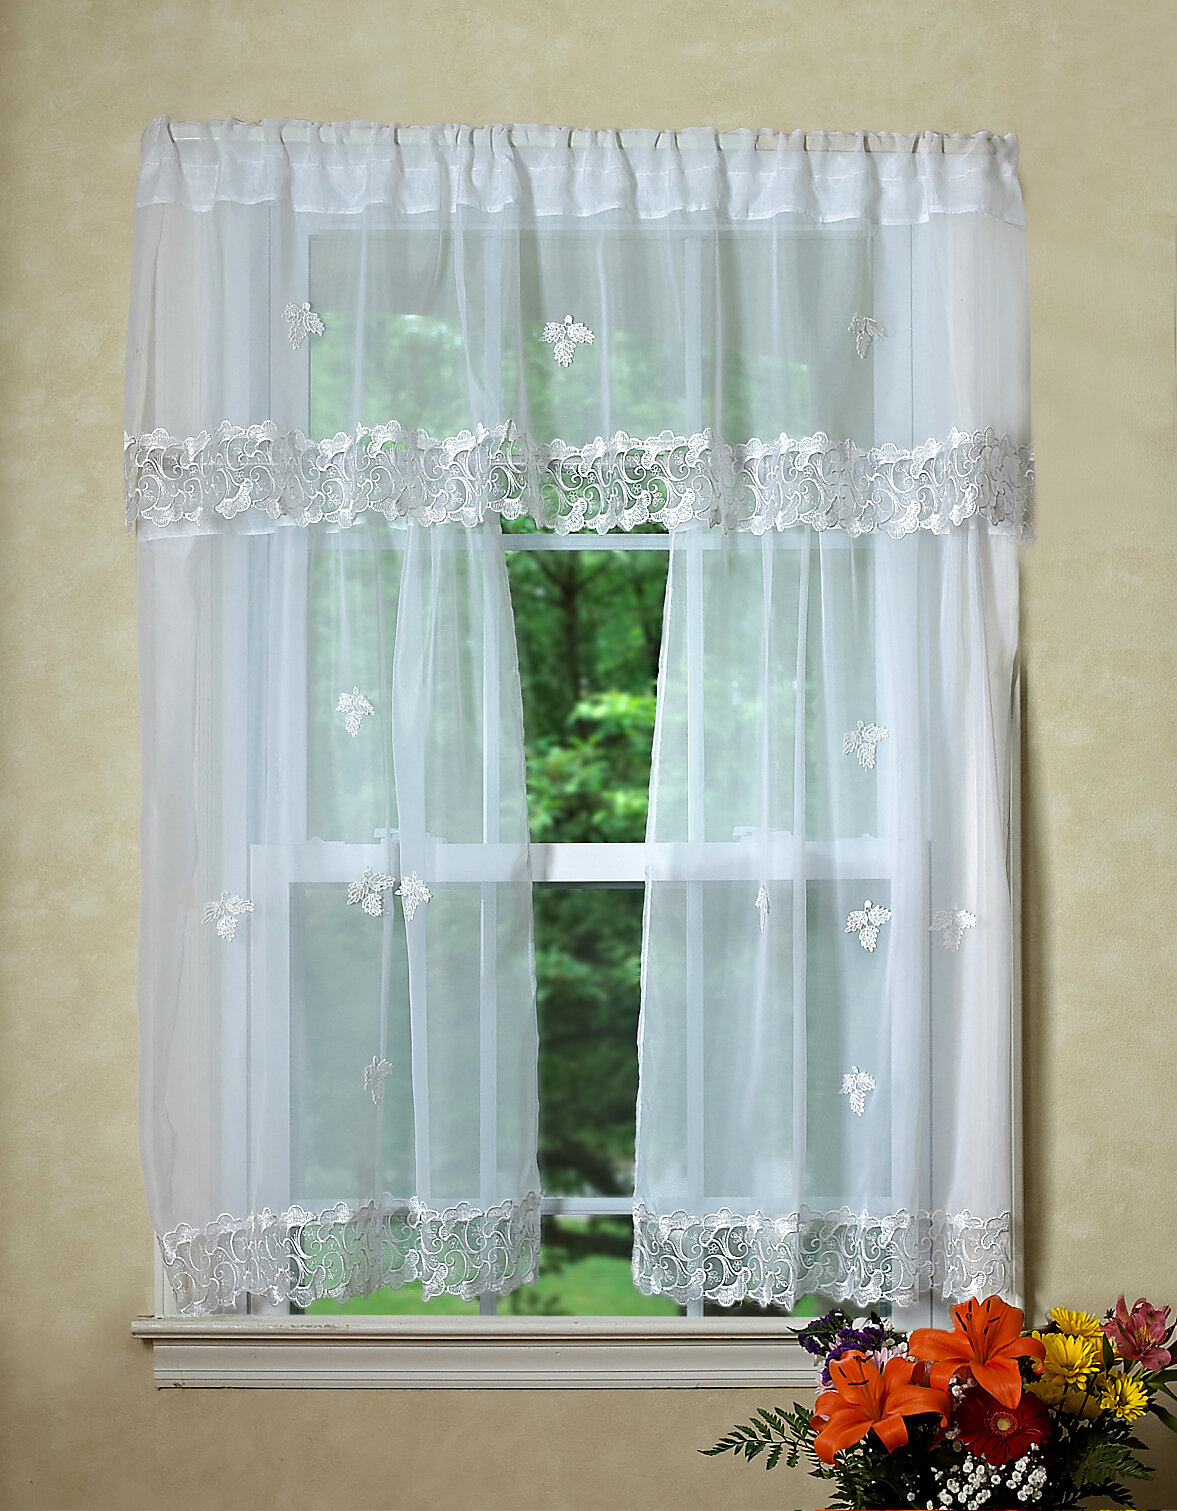 Violet Linen Lima Sheer Kitchen Curtain Valance and Tier Set ...